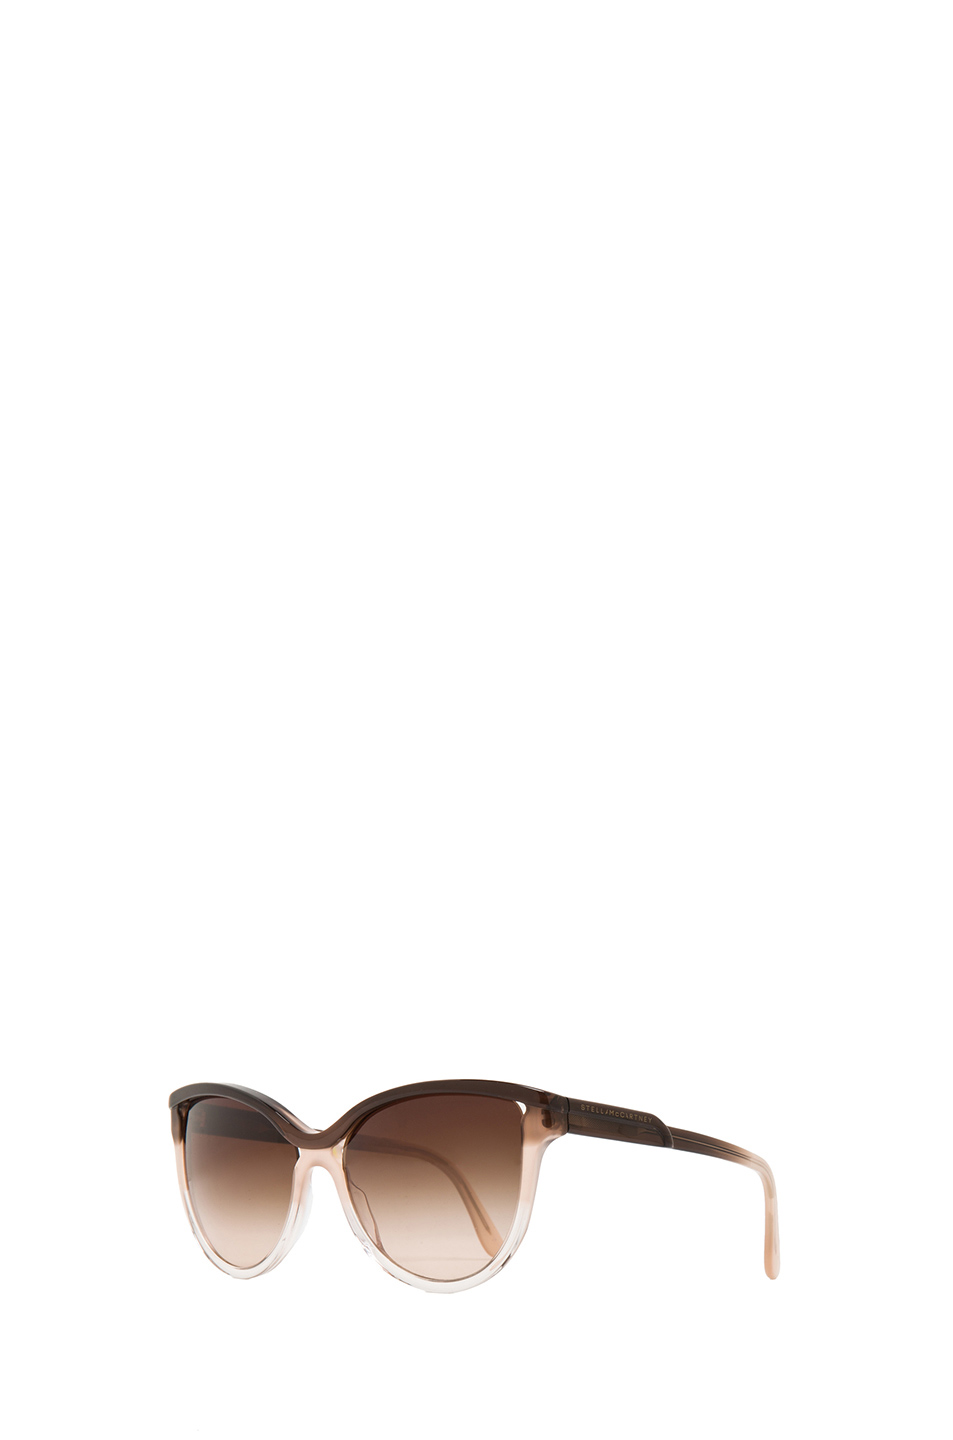 Stella McCartney|Rounded Cat Eye Sunglasses in Brown Fade